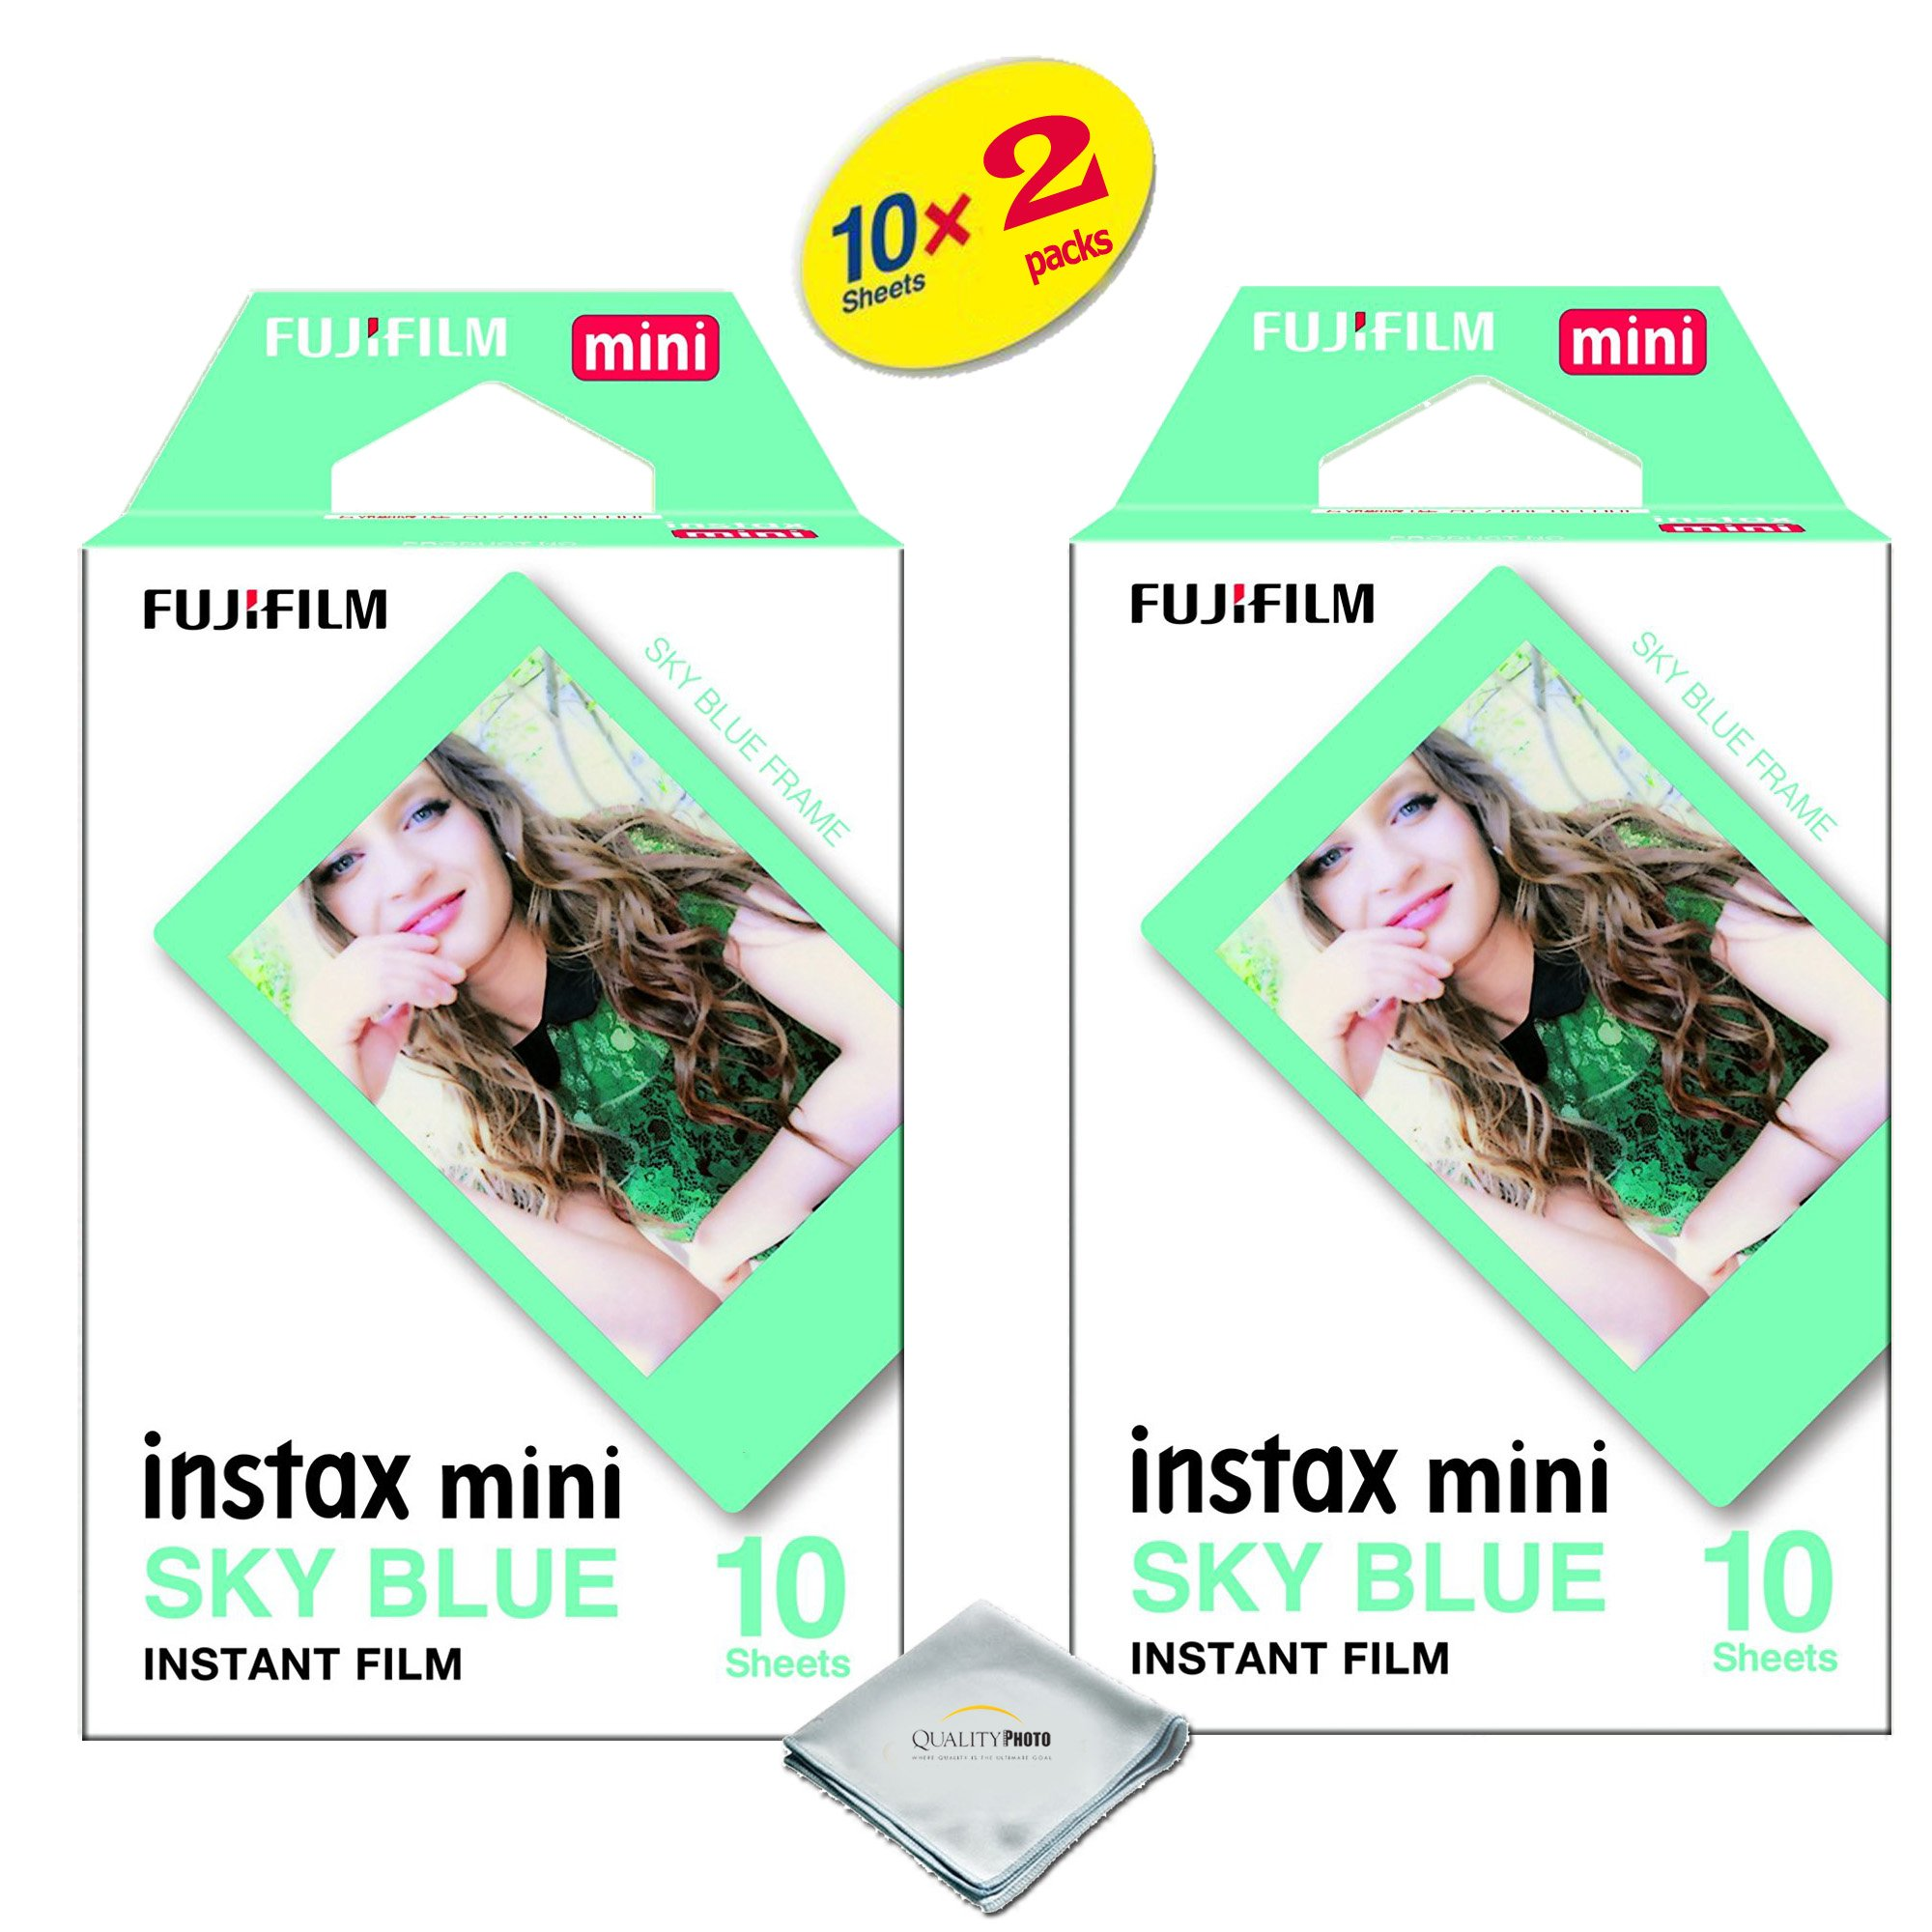 Fujifilm Instax Mini 8 & Mini 9 Film 2-Pack (20 Sheets) for Fujifilm instax Mini 8 & Mini 9 Cameras Sky Blue